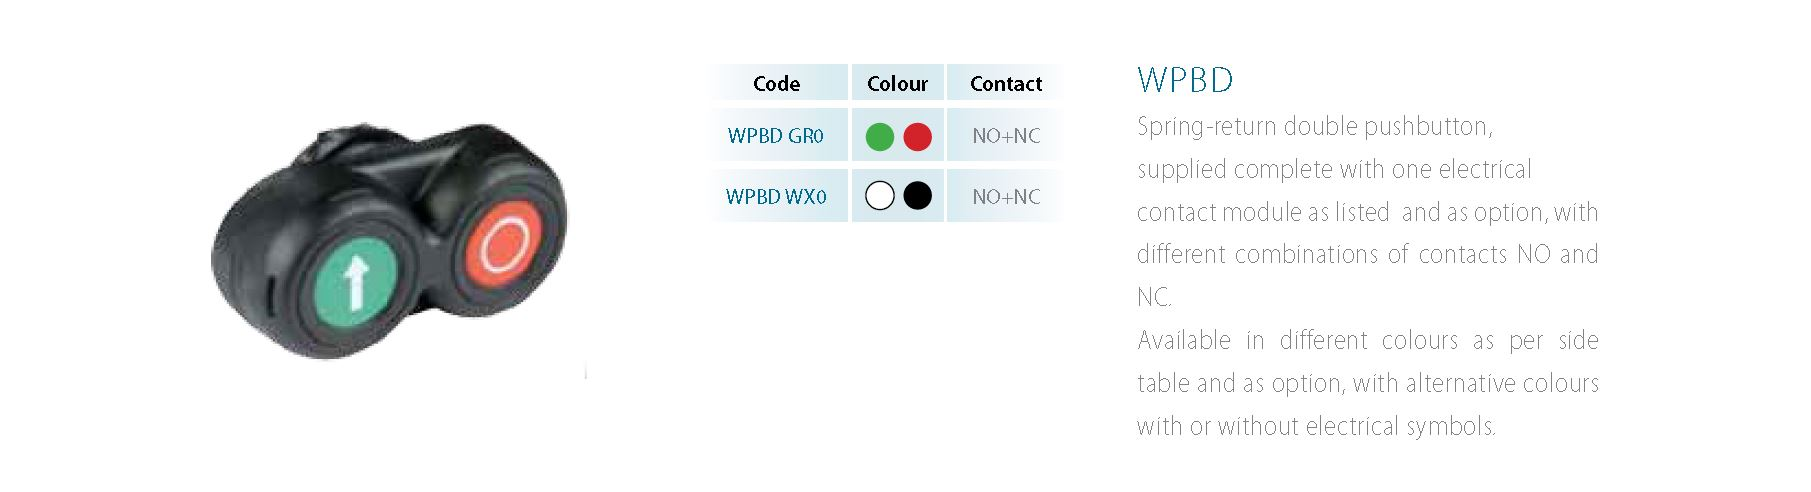 WPBD Spring-return double pushbutton, supplied complete with one electrical contact module as listed and as option, with different combinations of contacts NO and NC.